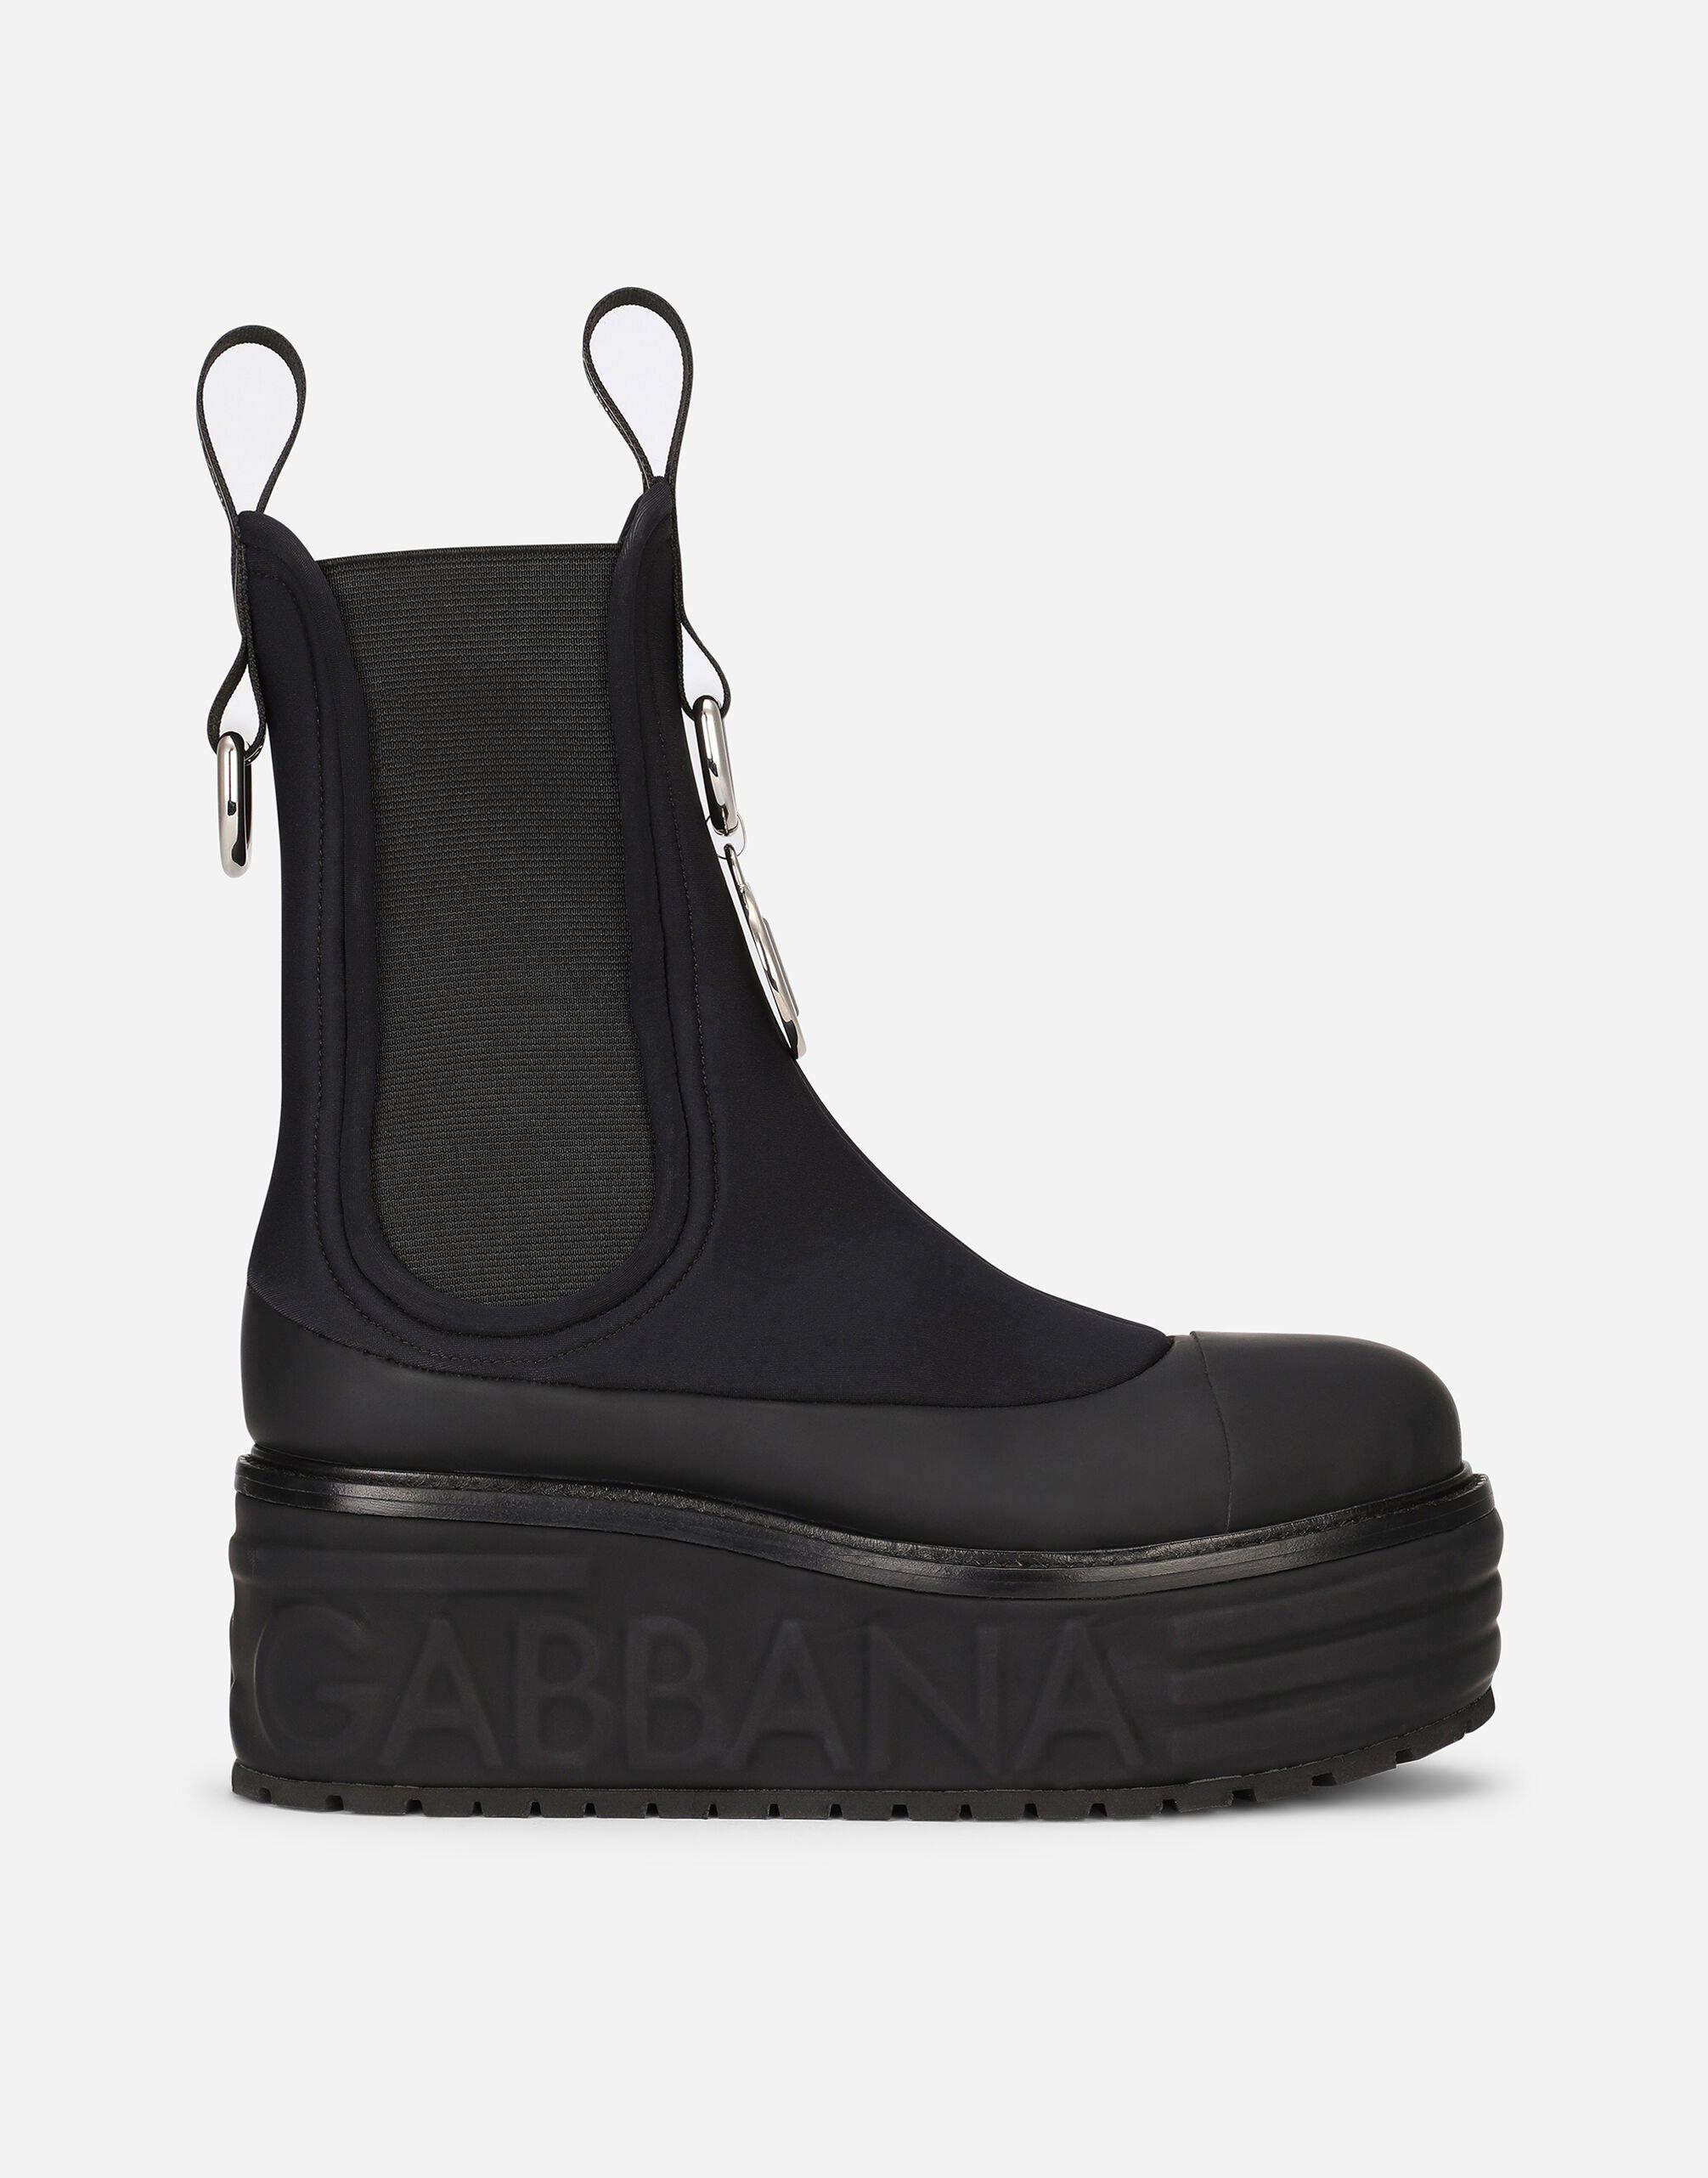 Neoprene ankle boots with DG logo